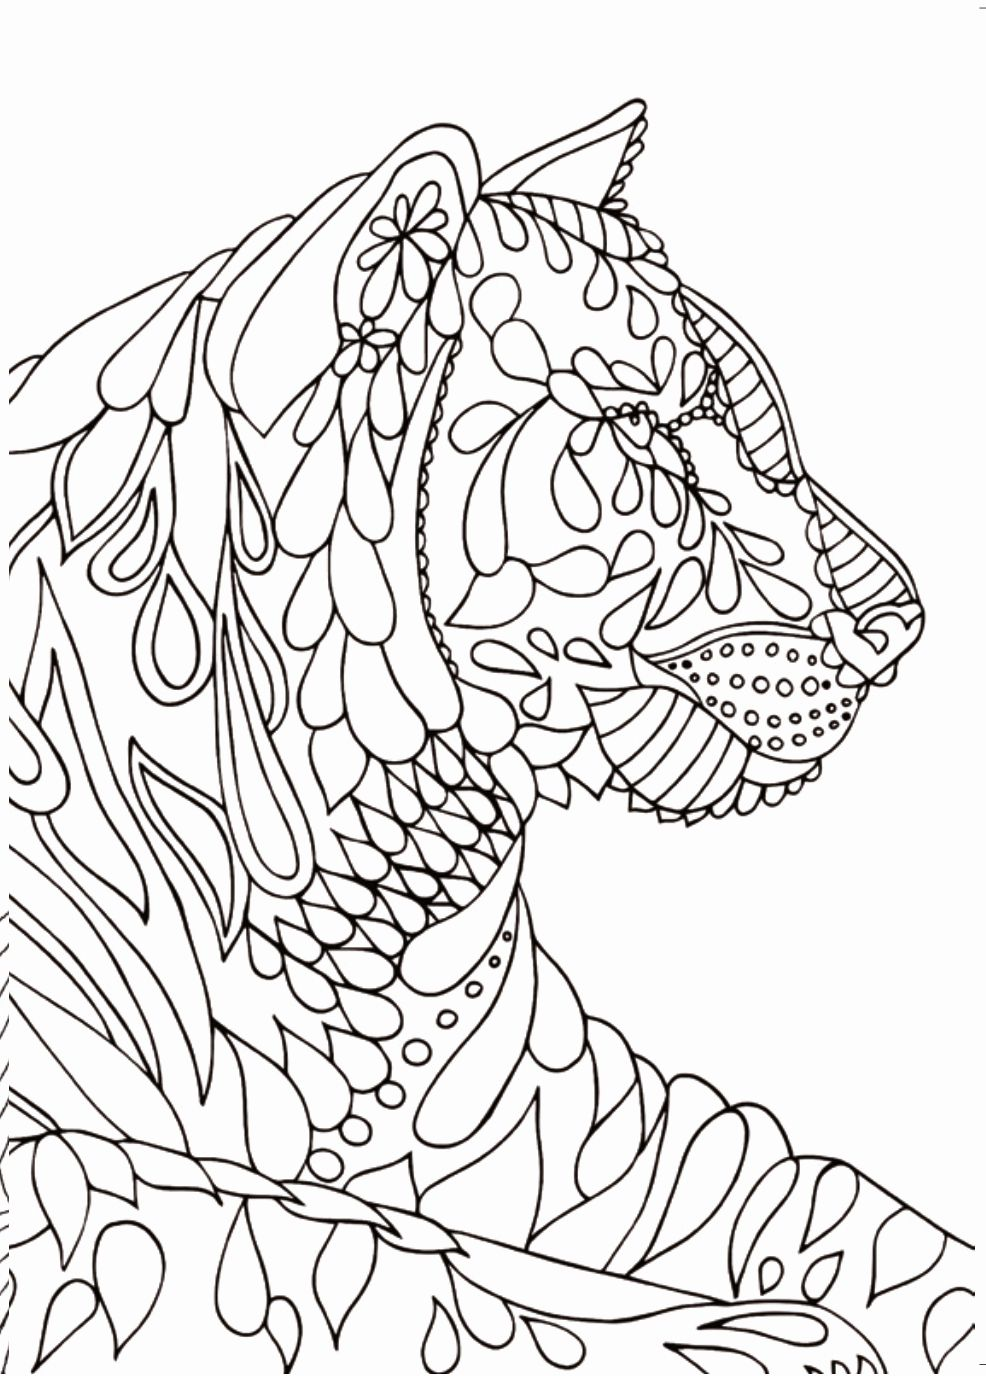 Animal Coloring Pages For 6 Year Olds Fresh Printable Mindfulness Colouring Printable 360 Degree Animal Coloring Pages Mindfulness Colouring Coloring Books [ 1376 x 986 Pixel ]